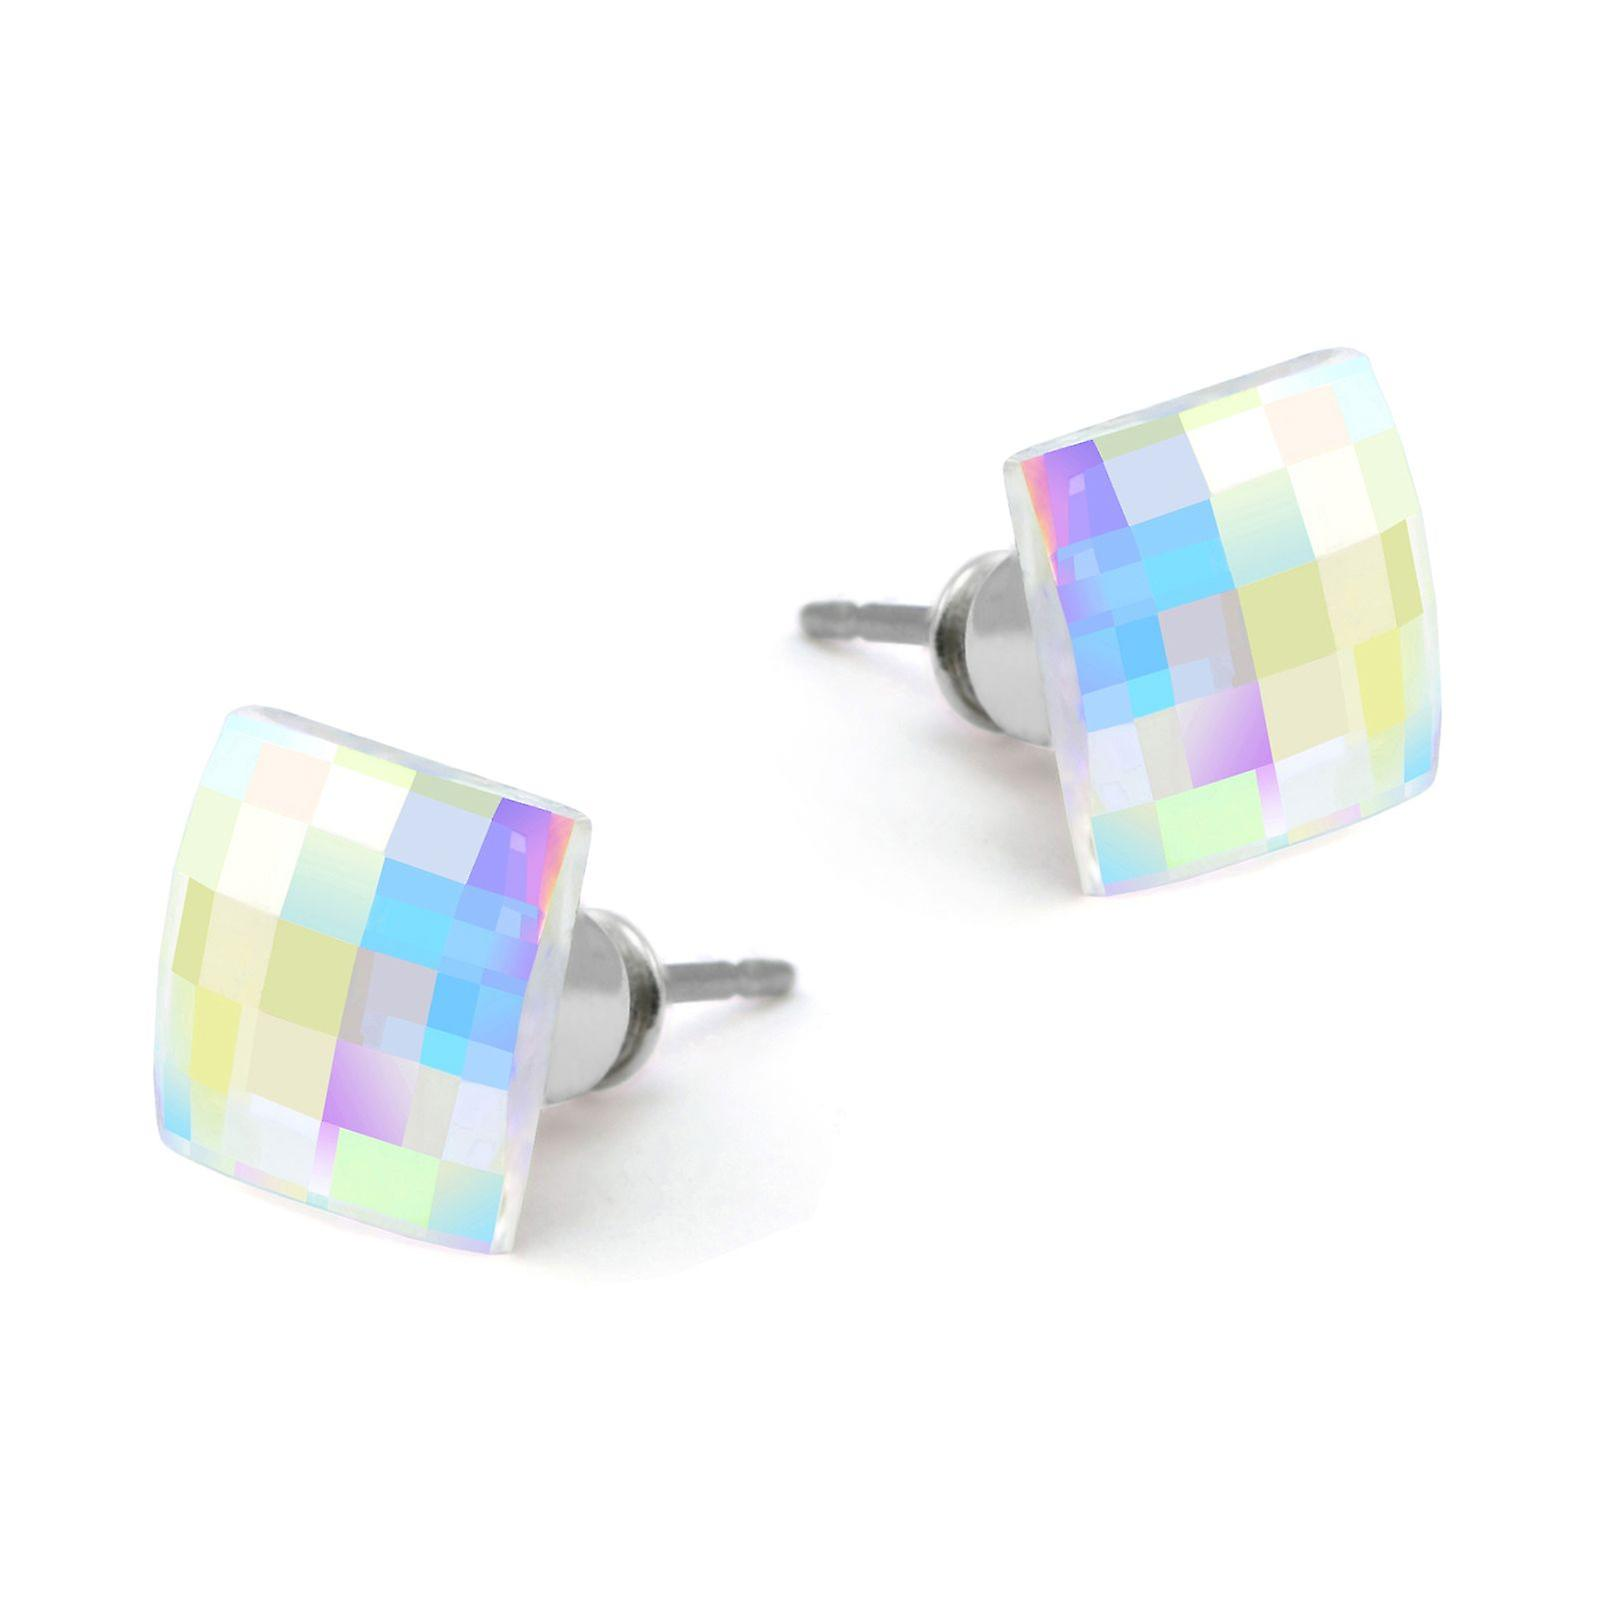 Swarovski Stud Earrings EMB 3.6